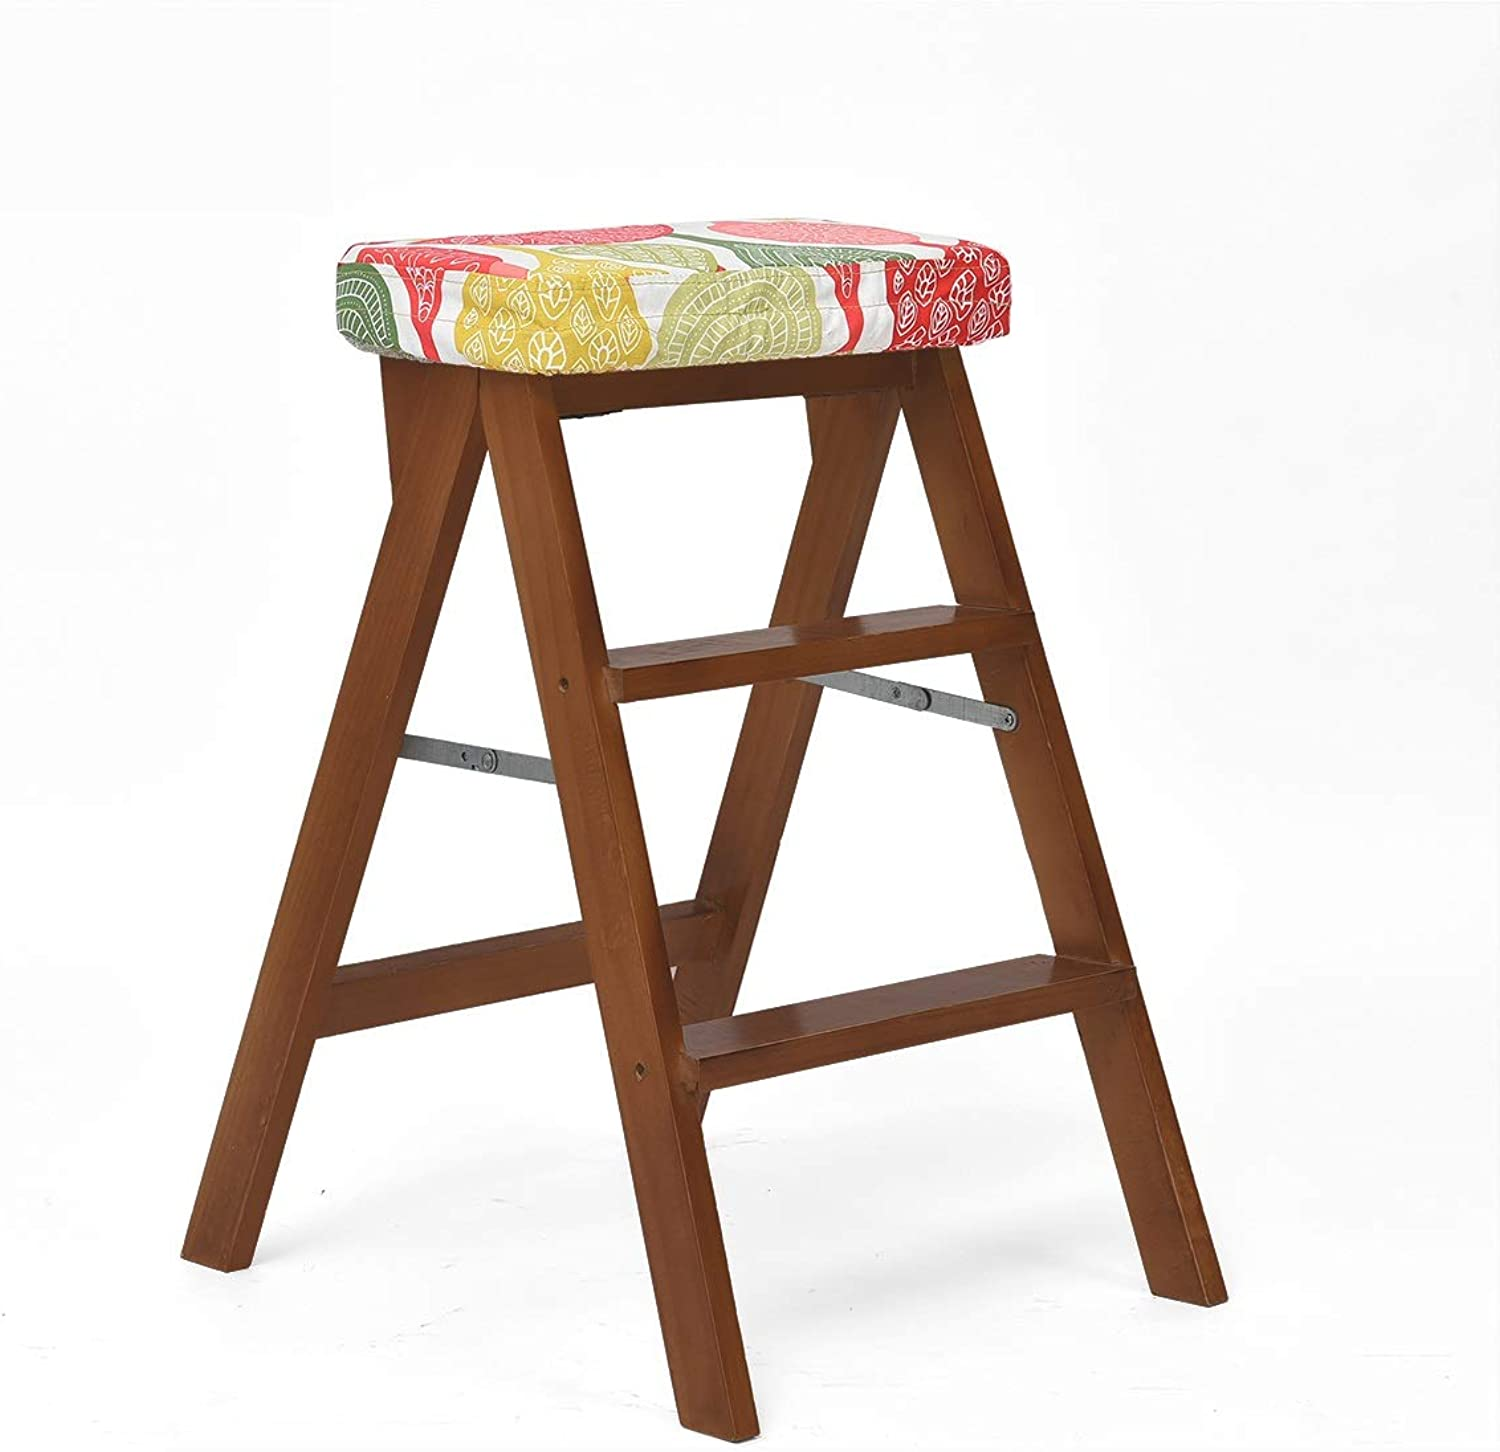 5ad4cfcdb2bcc Folding Stool 2 Tier Solidwood Ladder Stepladders Sturdy and Wide ...